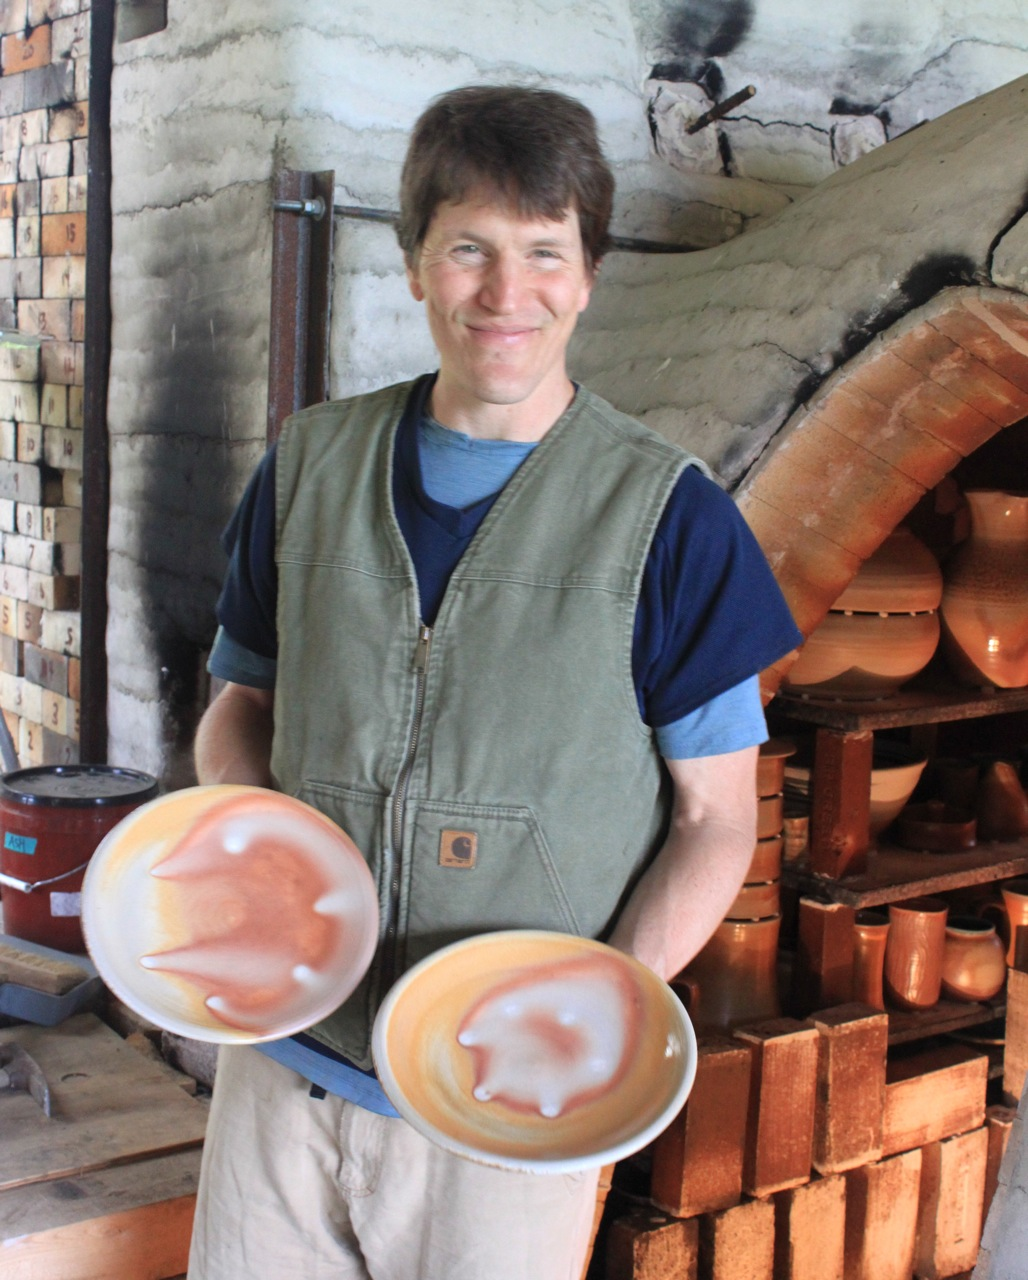 unloading the wood kiln at two potters